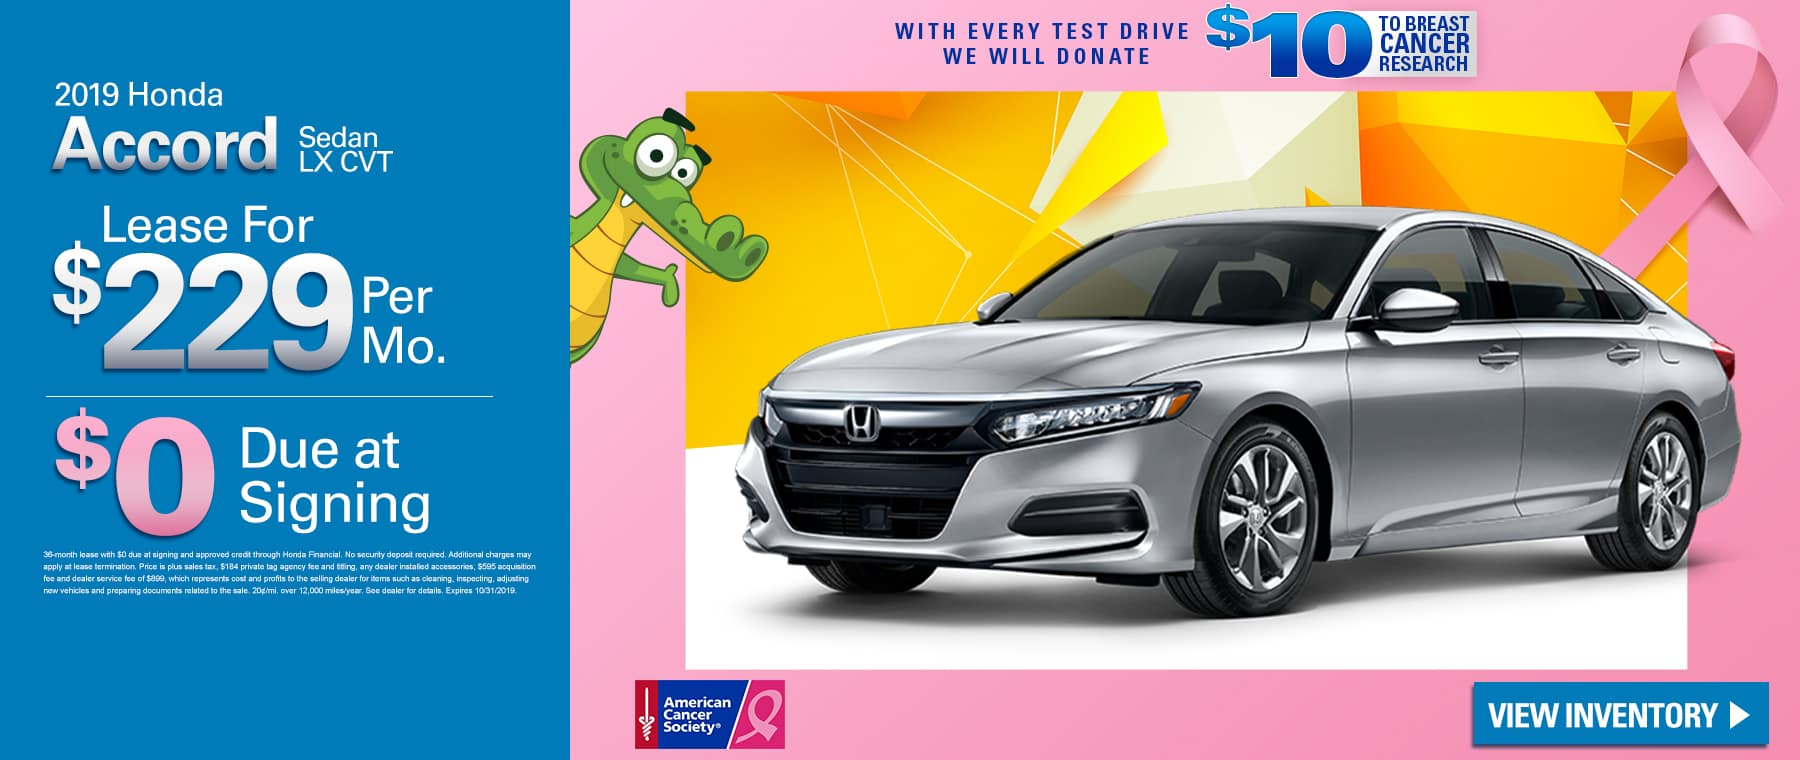 2019 Honda Accord Sedan LX CVT | Lease For $229 A Month $0 Due At Signing | With Every Test Drive We Will Donate $10 To Breast Cancer Research